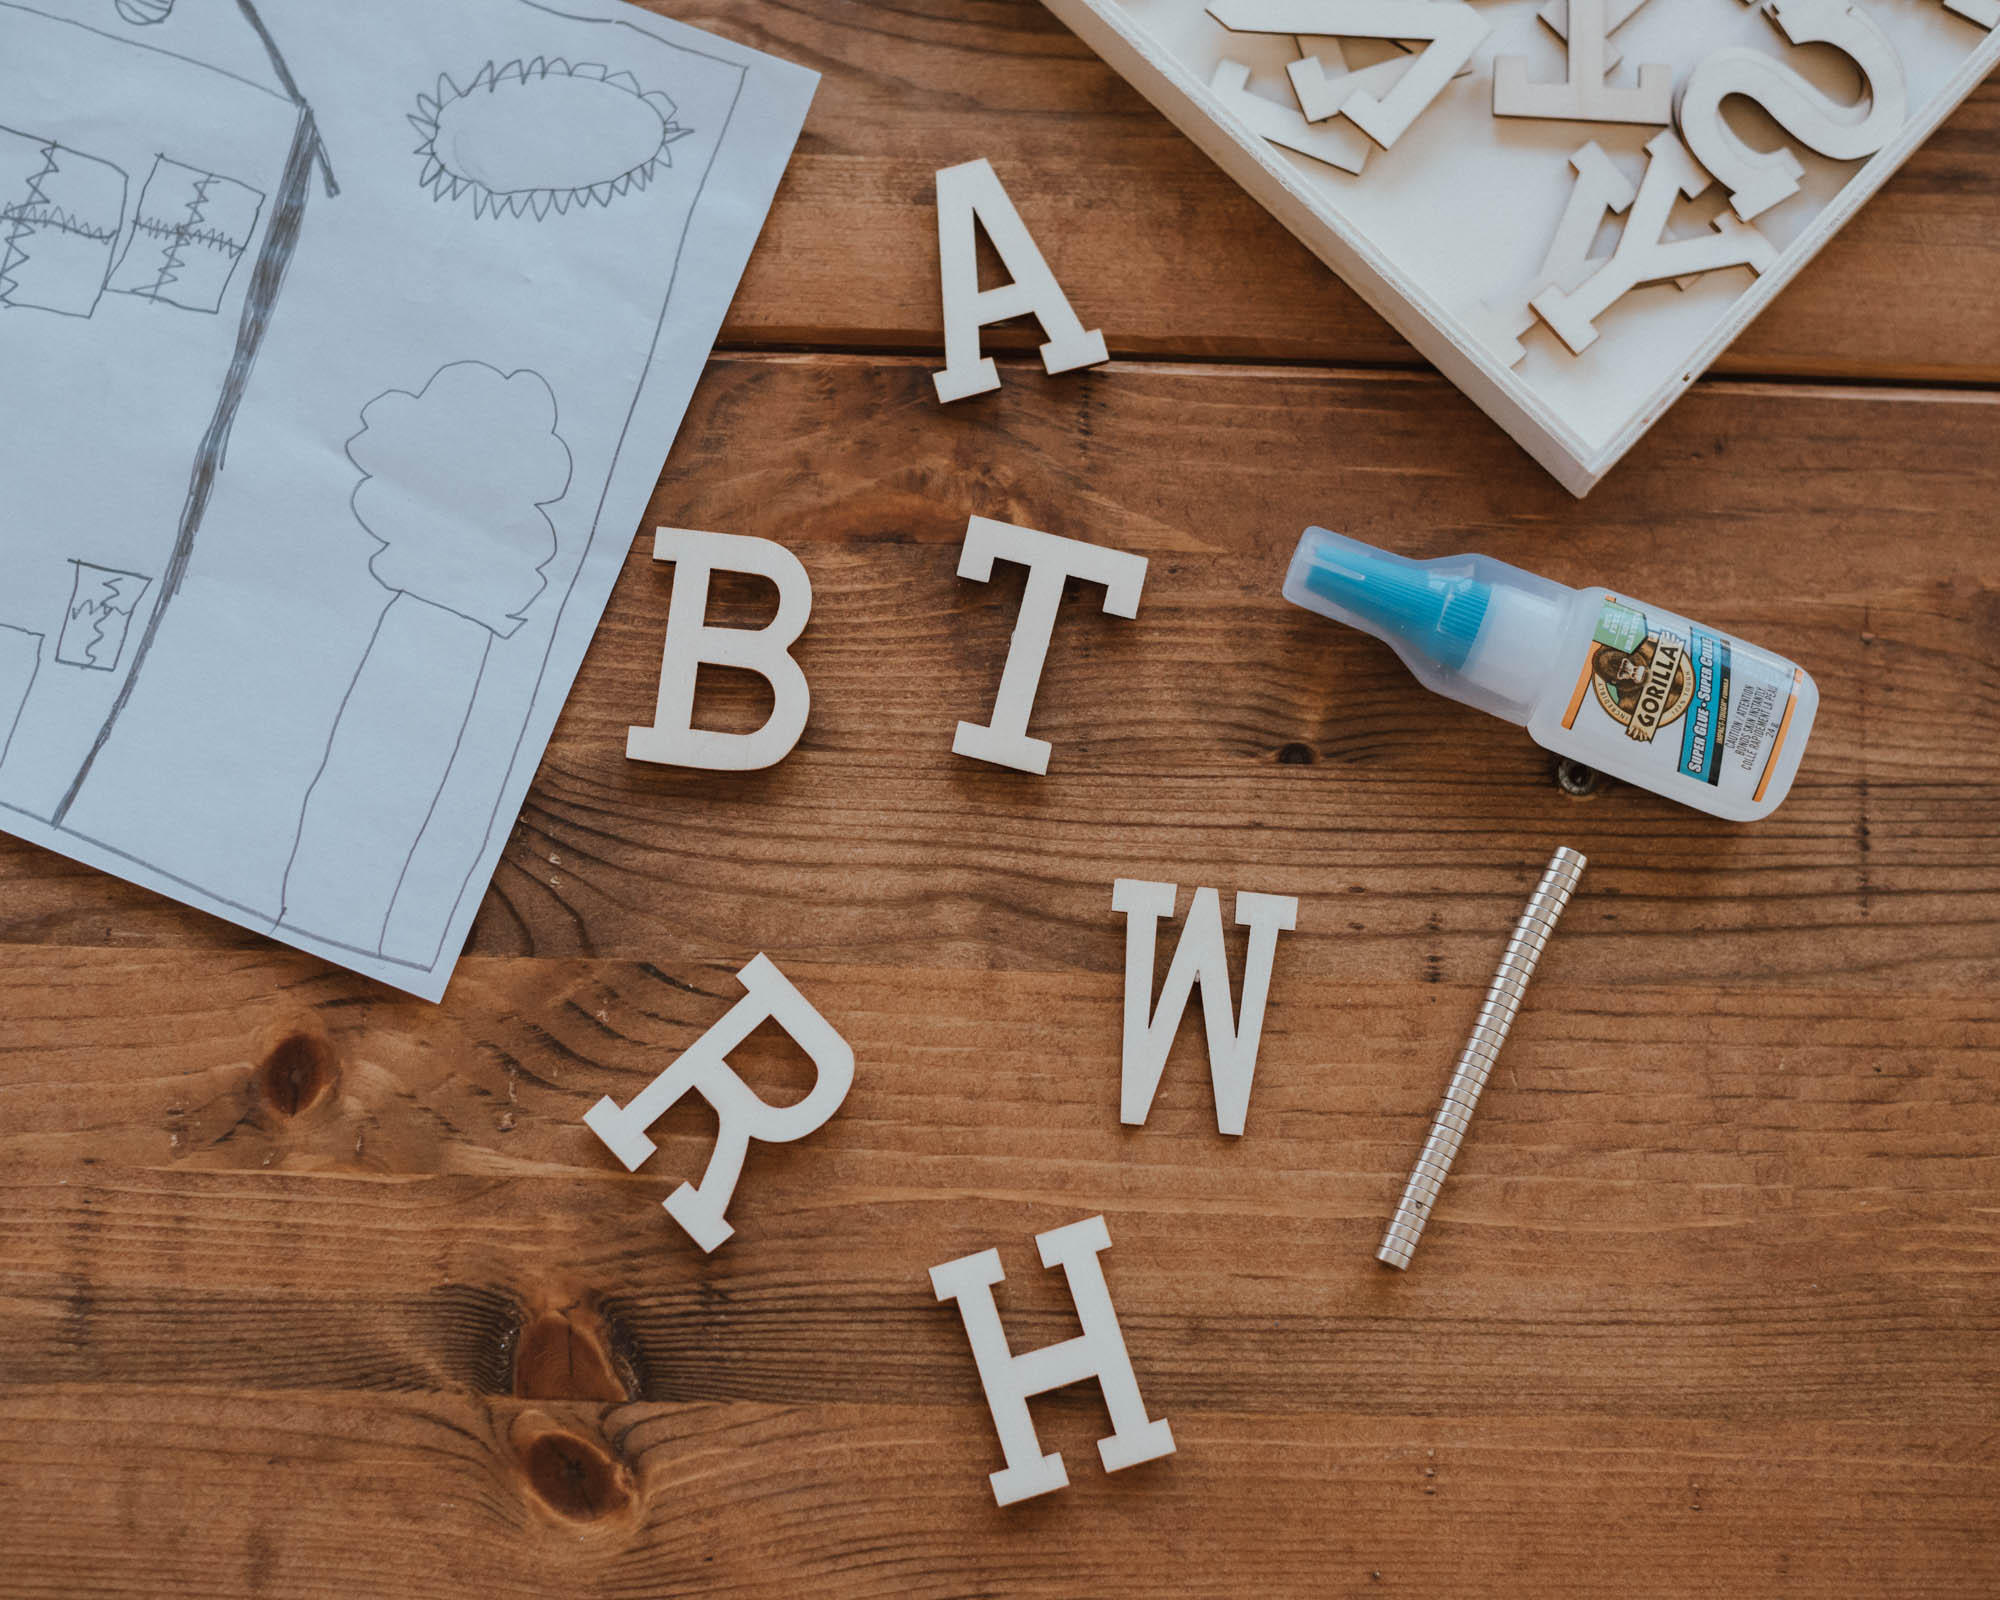 DIY Wooden Letter Magnets | The Wild Decoelis